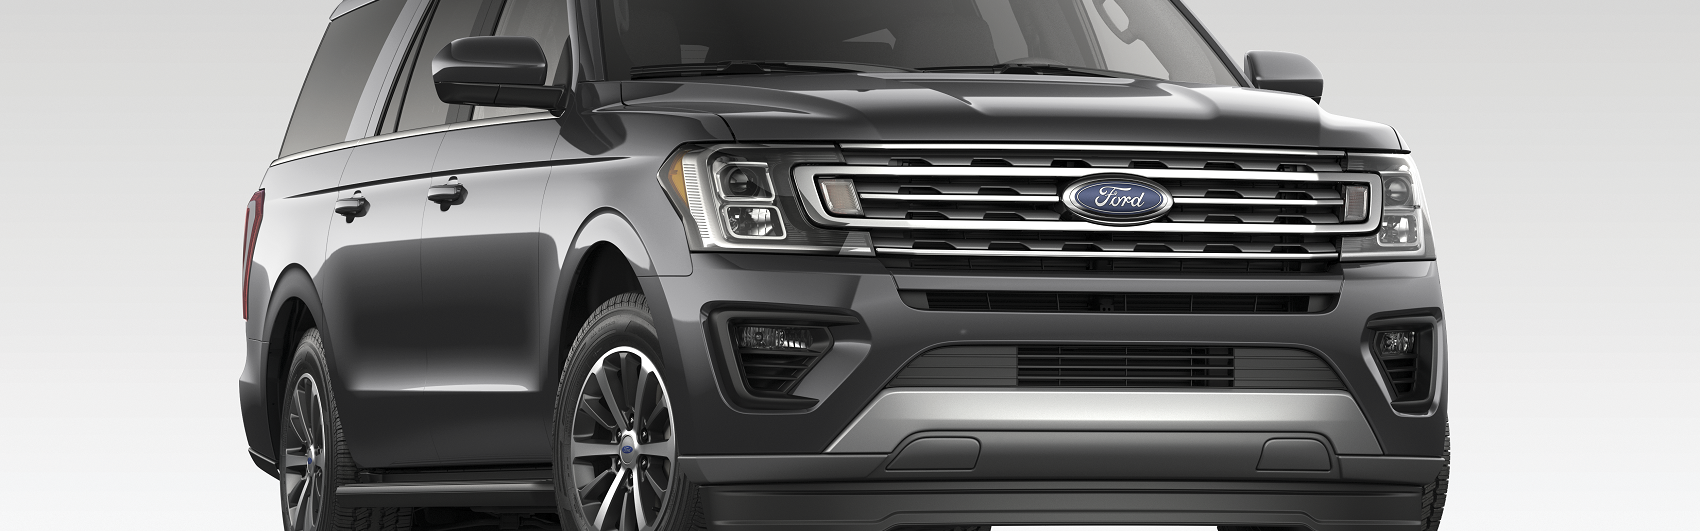 Ford Expedition Technology Review Beaumont TX  Kinsel Ford